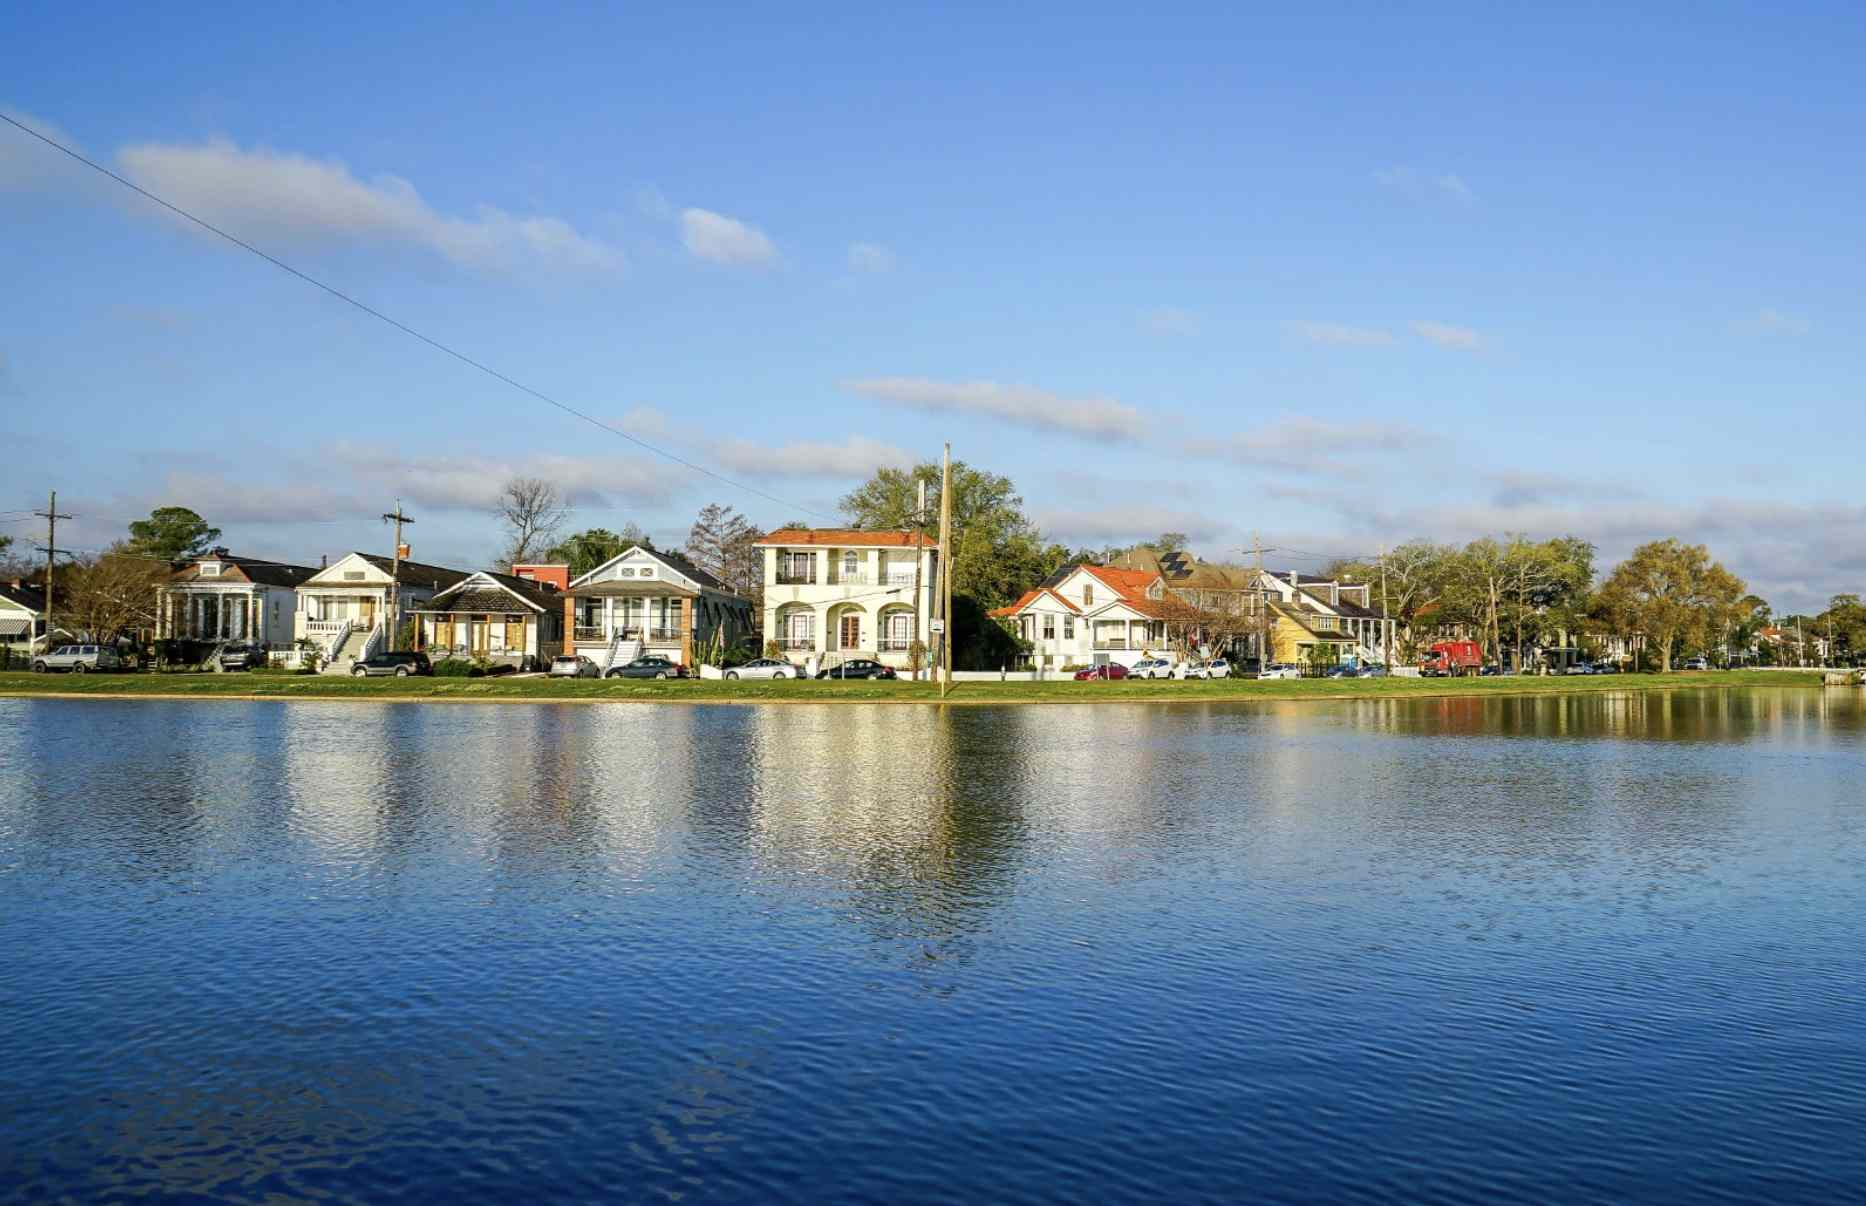 View of the Bayou St. John in New Orleans